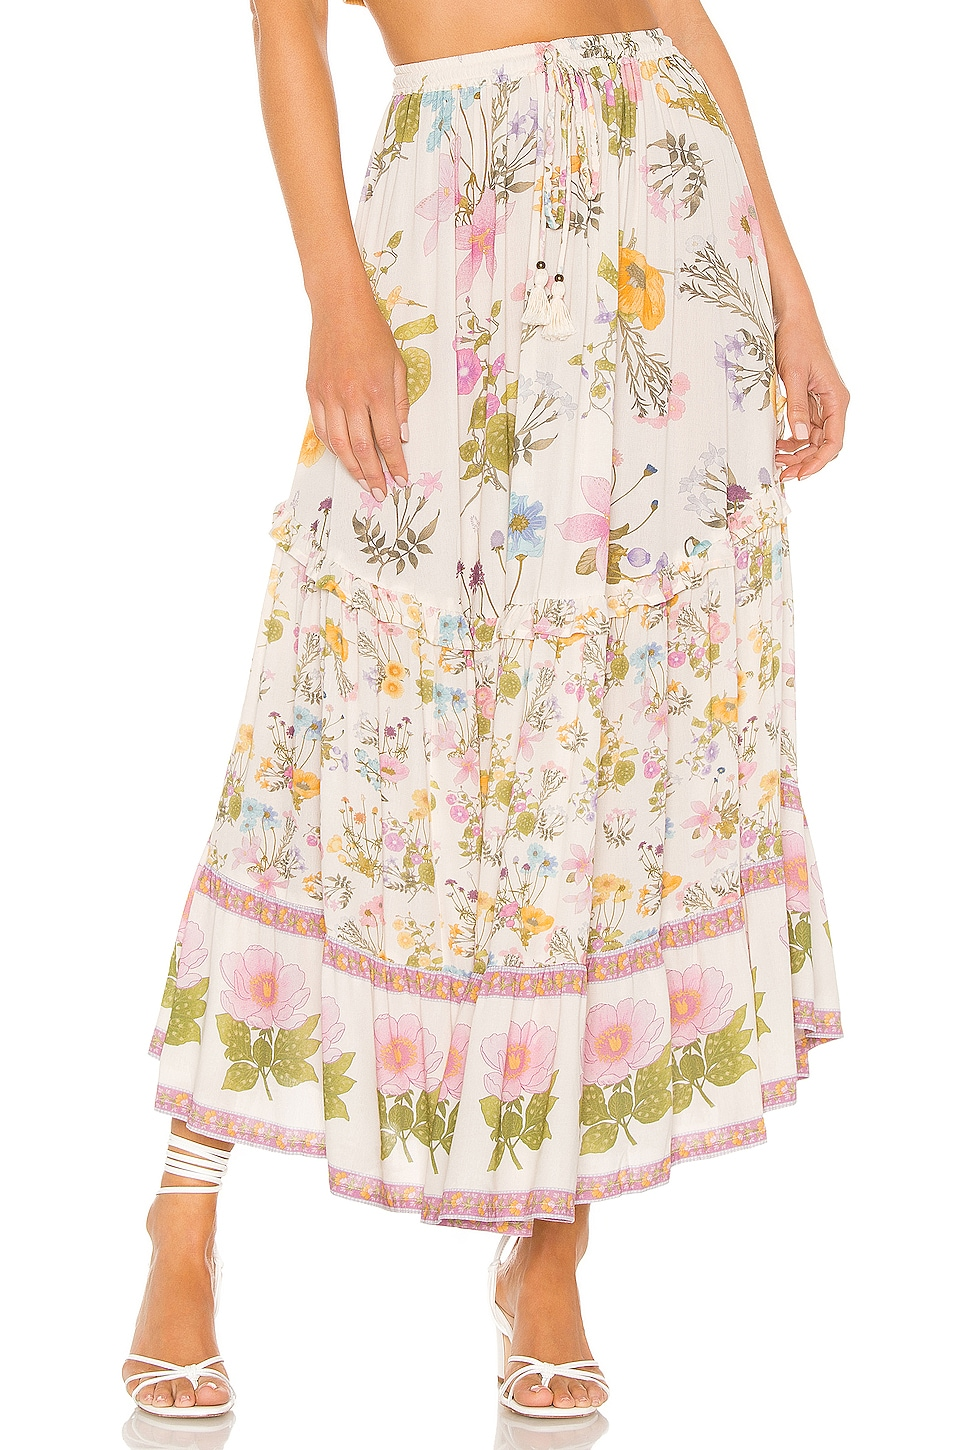 Spell & The Gypsy Collective Wild Bloom Maxi Skirt in Cream